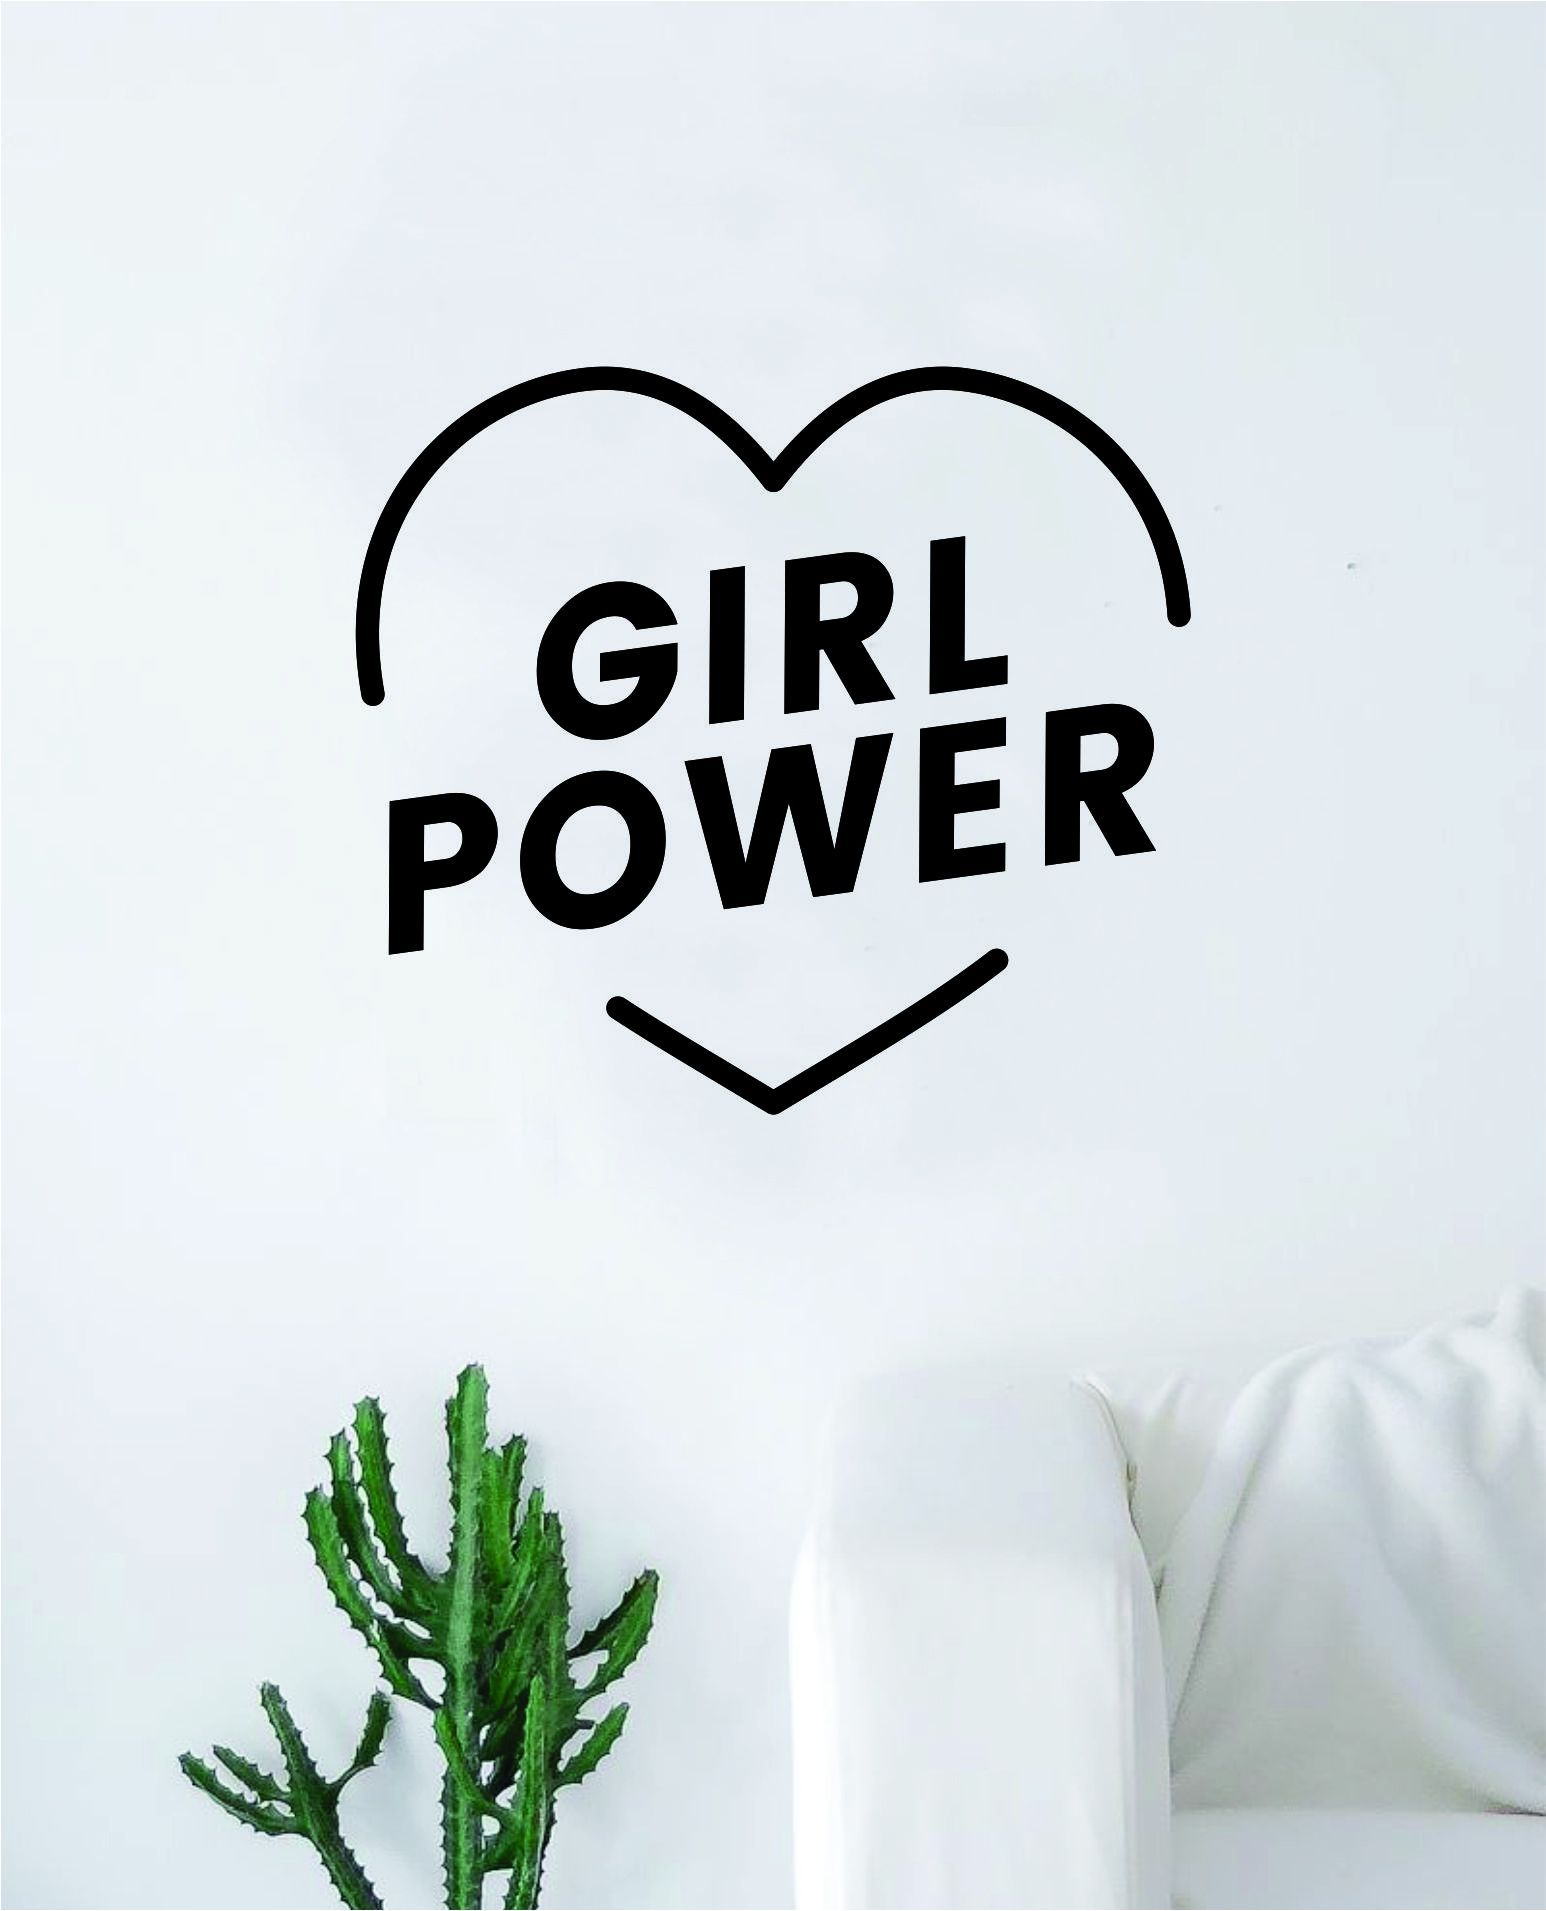 """Girl Power The latest in home decorating. Beautiful wall vinyl decals, that are simple to apply, are a great accent piece for any room, come in an array of colors, and are a cheap alternative to a custom paint job.Default color is black MEASUREMENTS:28"""" x 25"""" About Our Wall Decals:* Each decal is made of high quality, self-adhesive and waterproof vinyl.* Our vinyl is rated to last 7 years outdoors and even longer indoors.* Decals can be applied to any clean, smooth and flat surface. Put them on"""